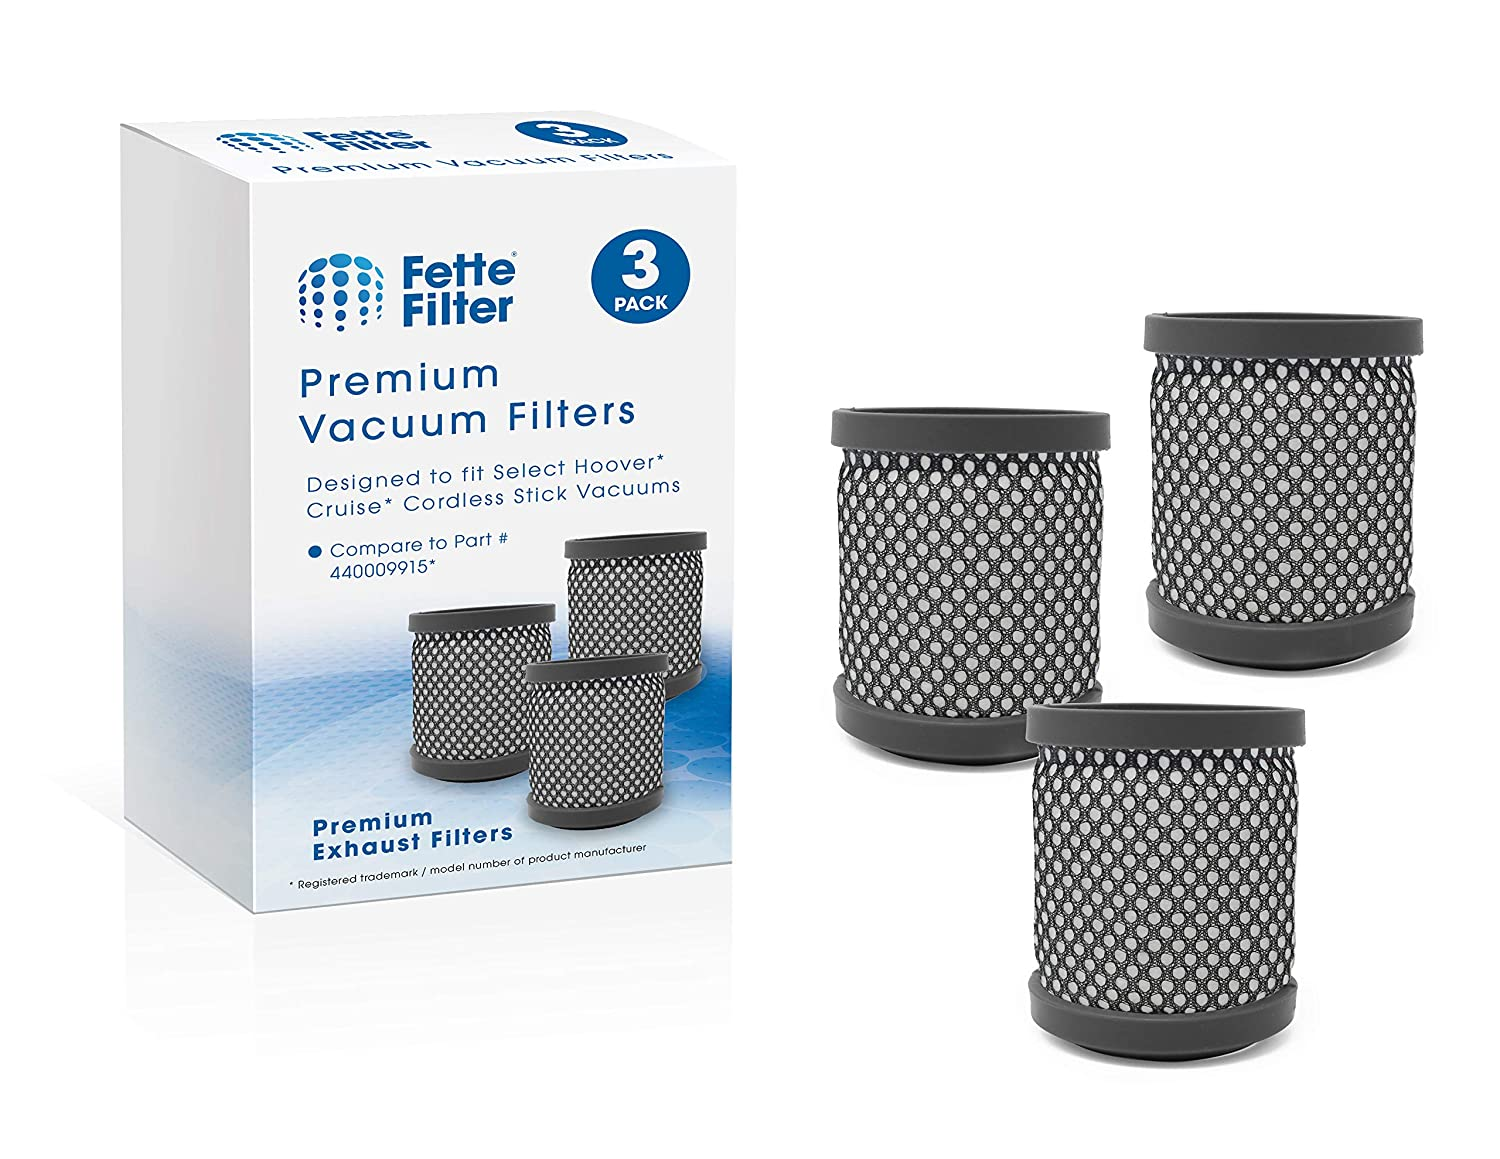 Pack of 3 BH52212 BH52200 BH52210PC Fette Filter Vacuums Filter Compatible for Hoover Cruise Cordless Ultra-Light Stick BH52210 Compare to Part # 440009915